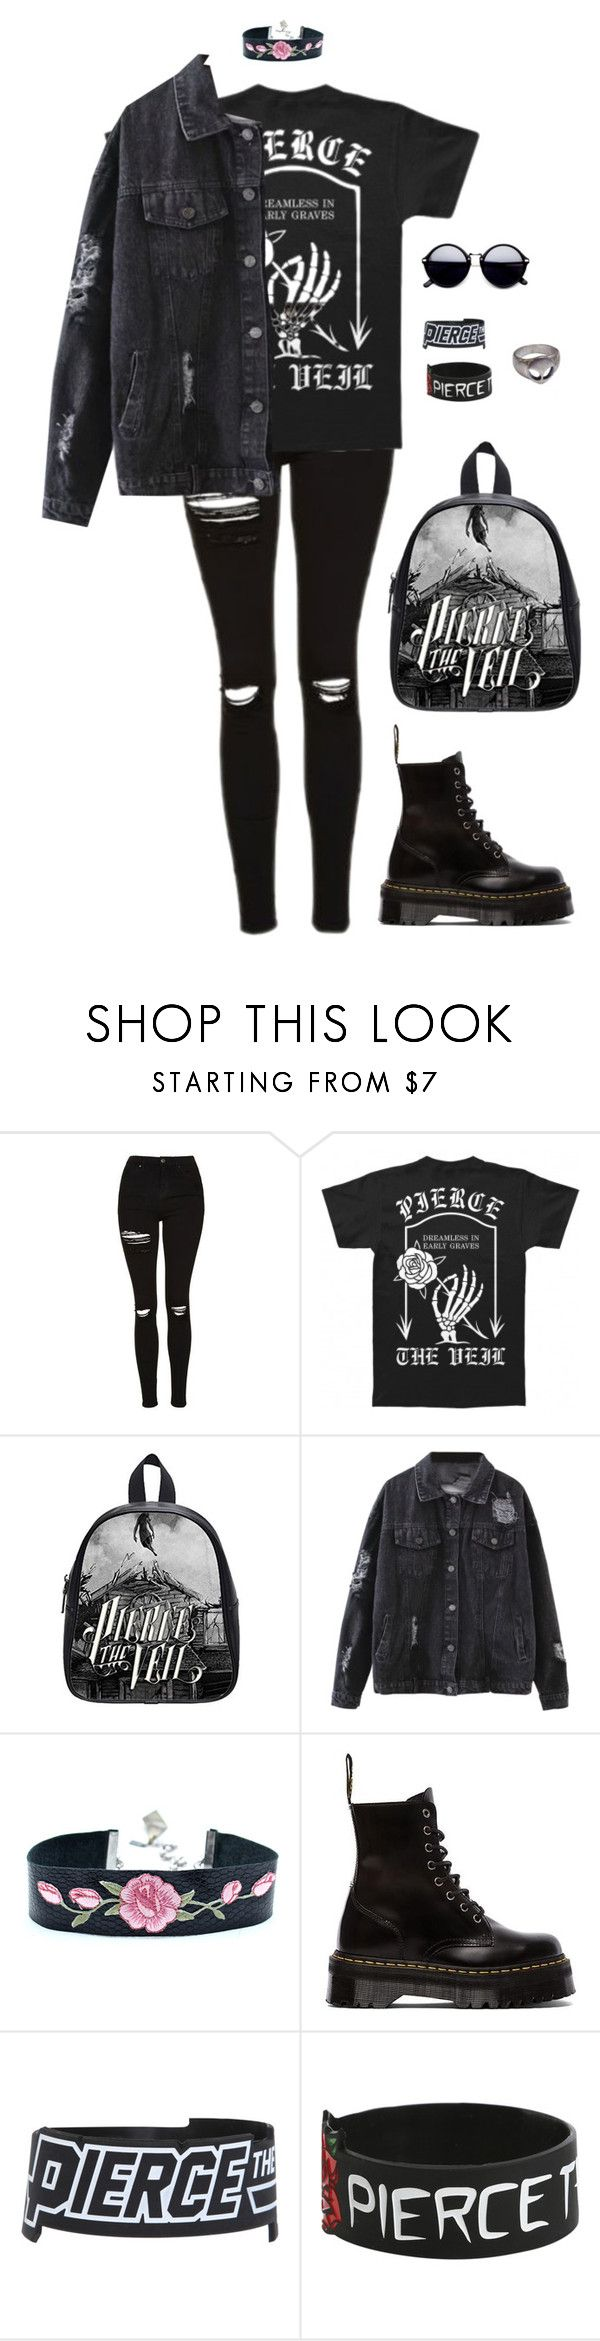 """""""King for a Day - Pierce The Veil"""" by grungeclothes ❤ liked on Polyvore featuring Topshop, Dr. Martens and Hot Topic"""